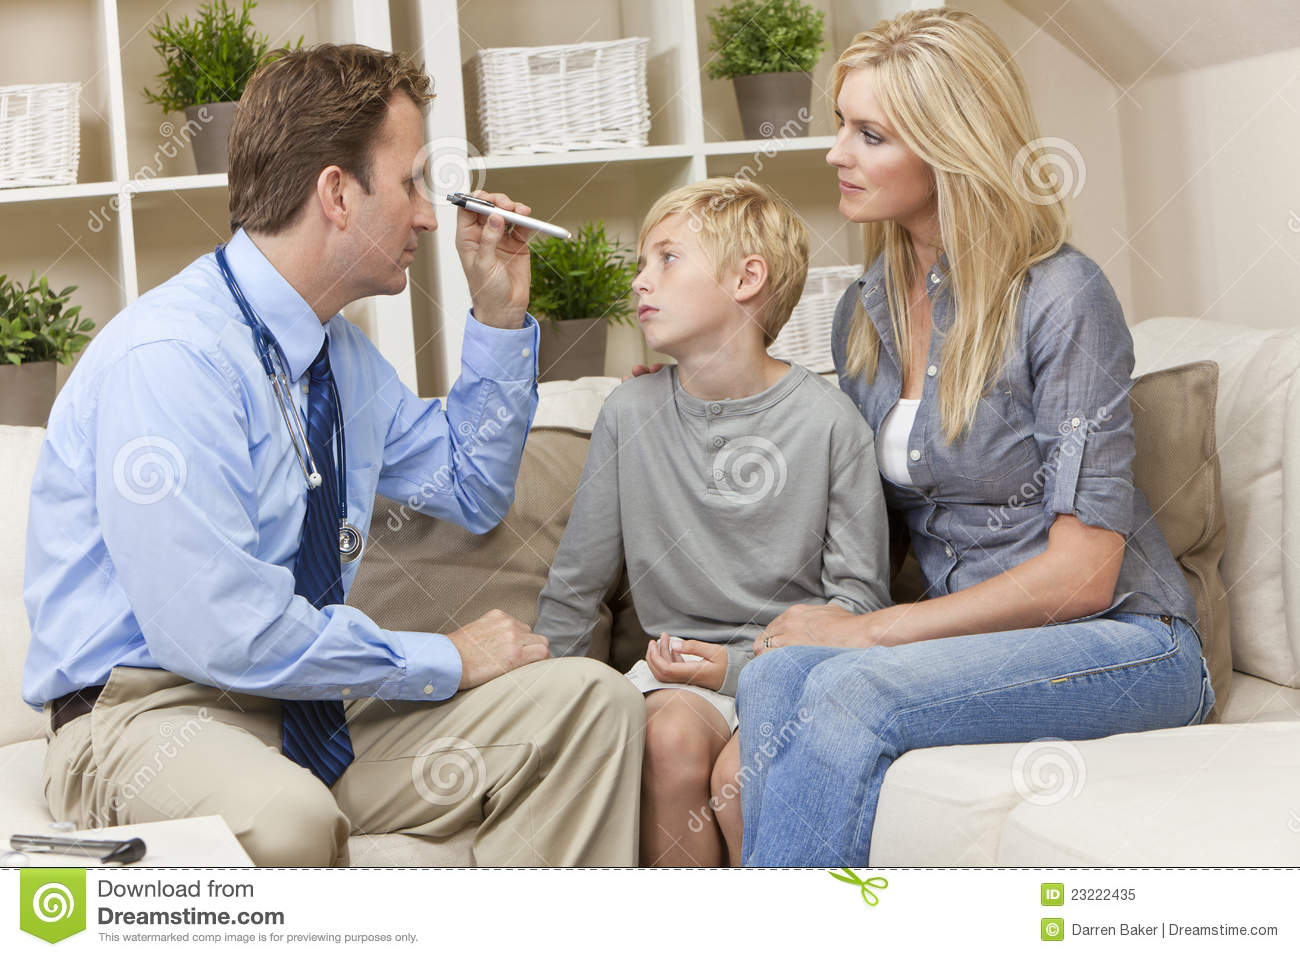 male doctor home visit examining child with mother royalty free stock photo image 23222435. Black Bedroom Furniture Sets. Home Design Ideas